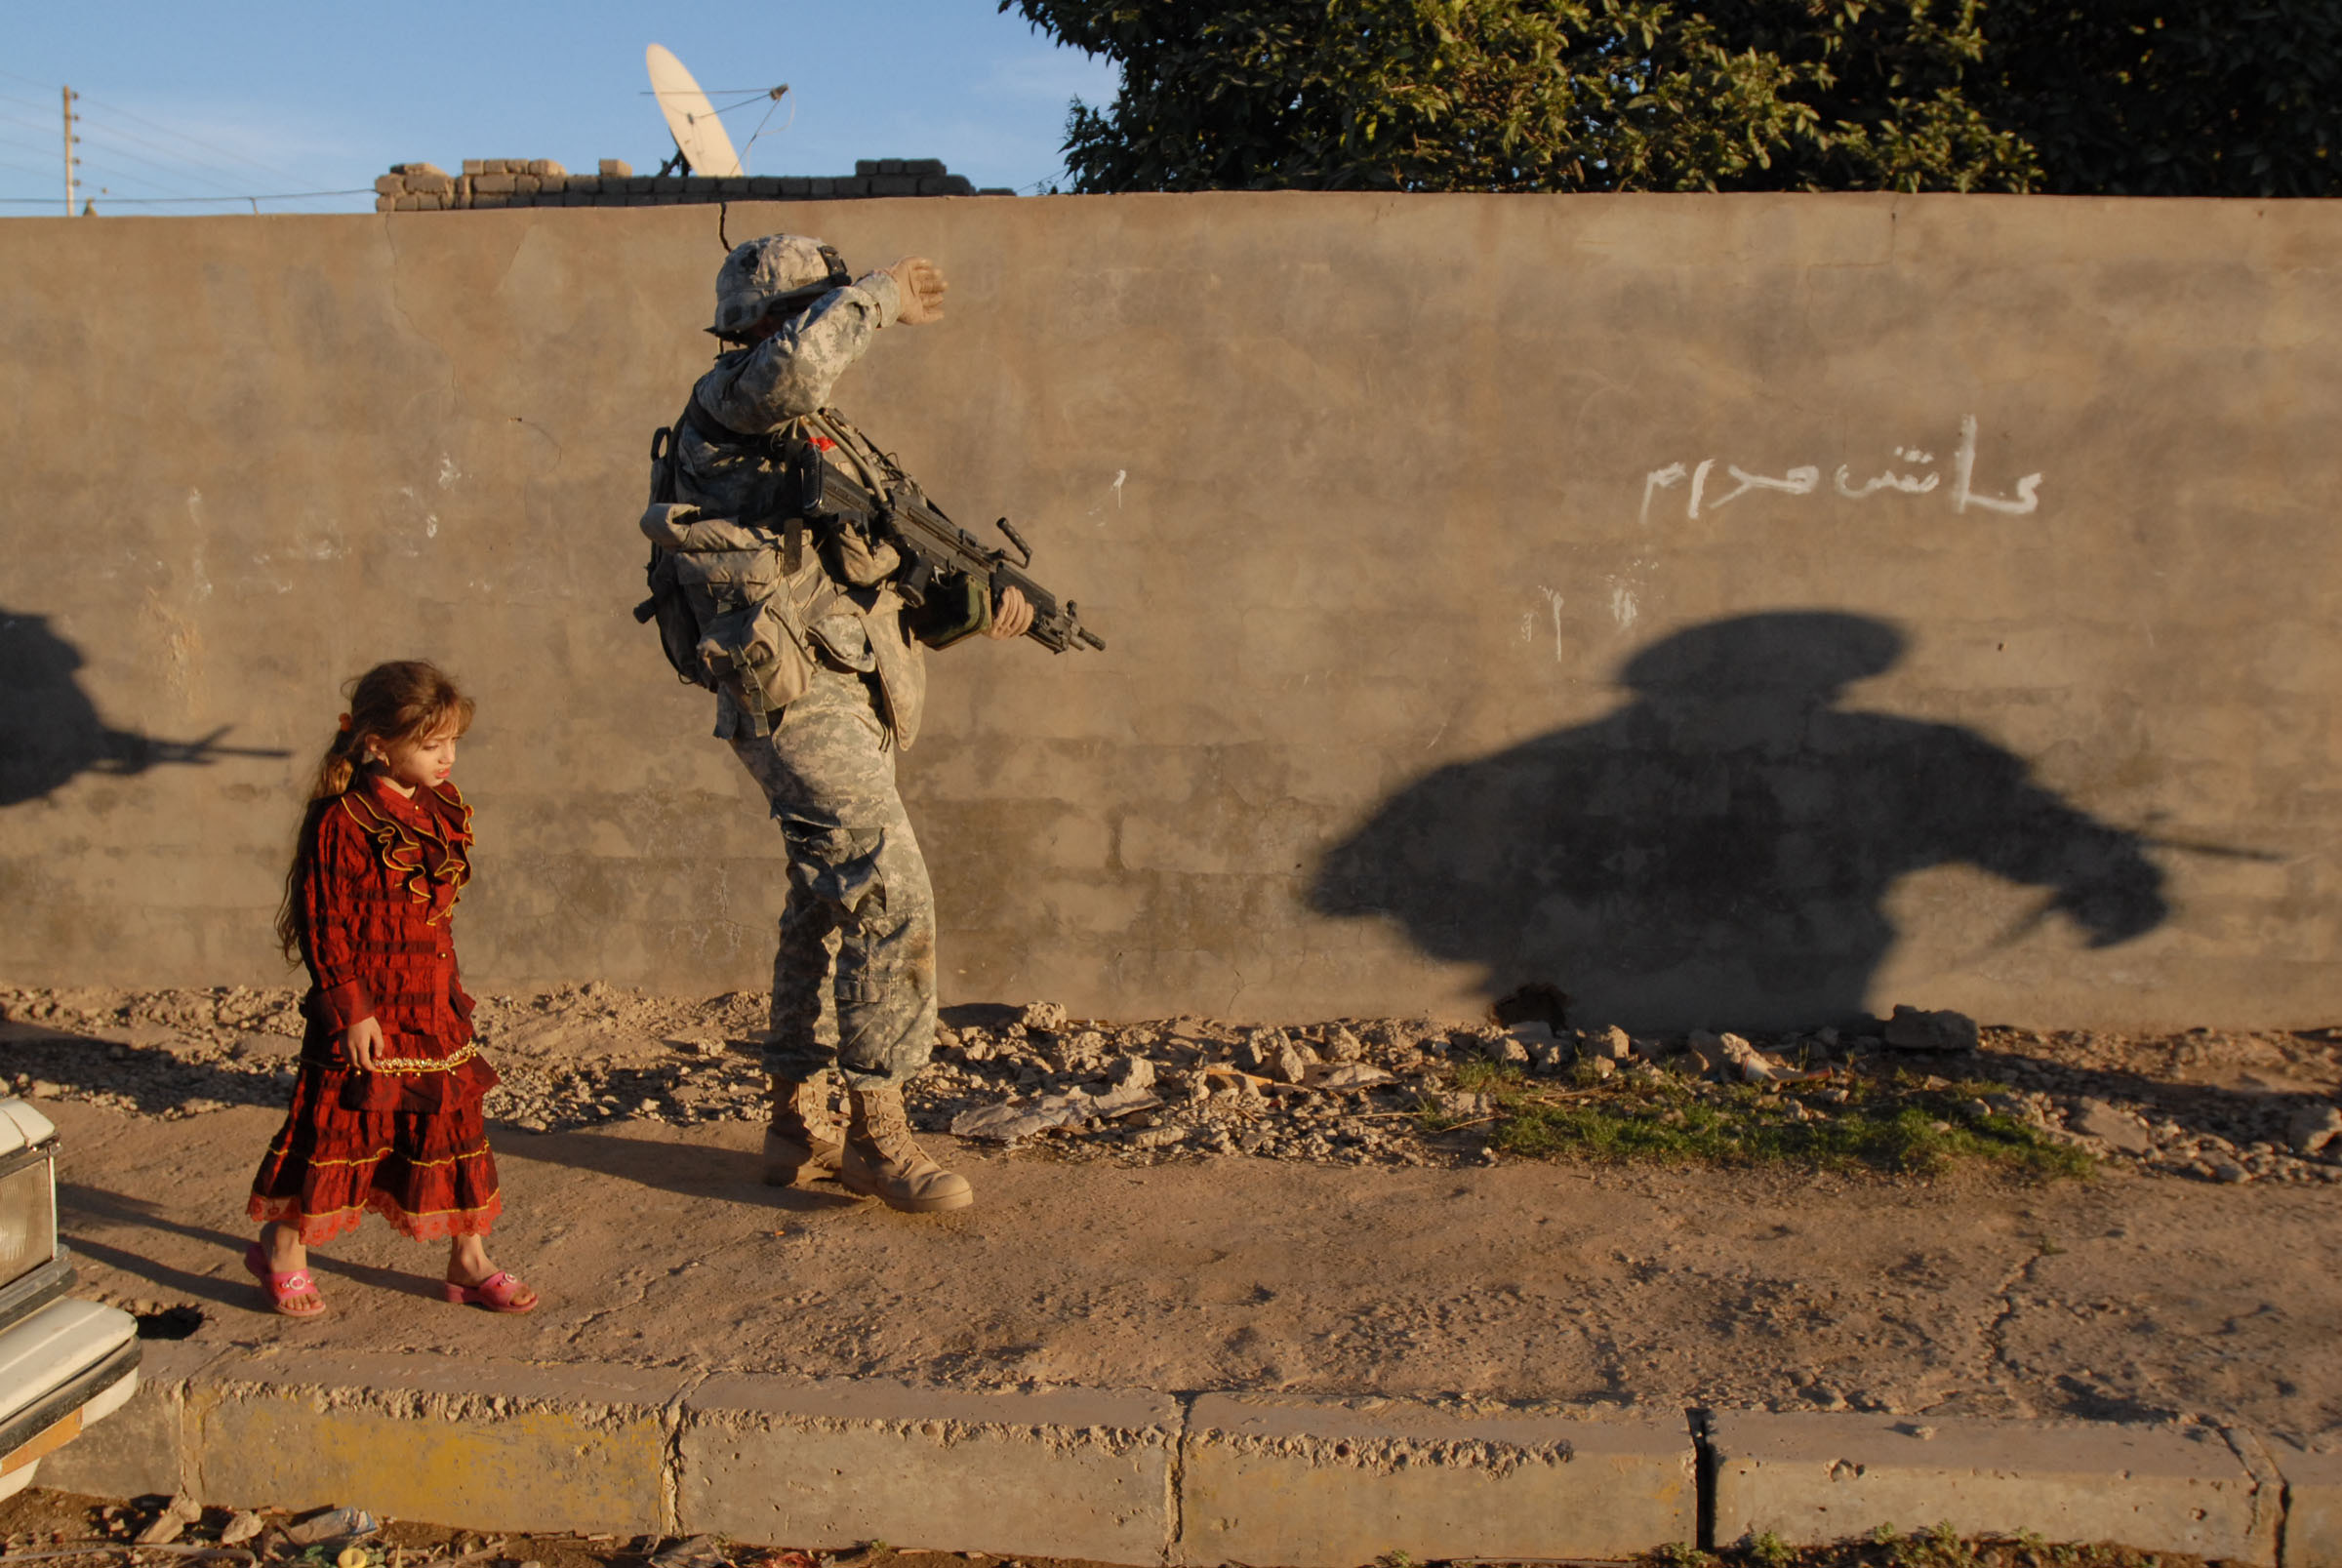 Army troop reductions unlikely to decrease readiness, defense budget